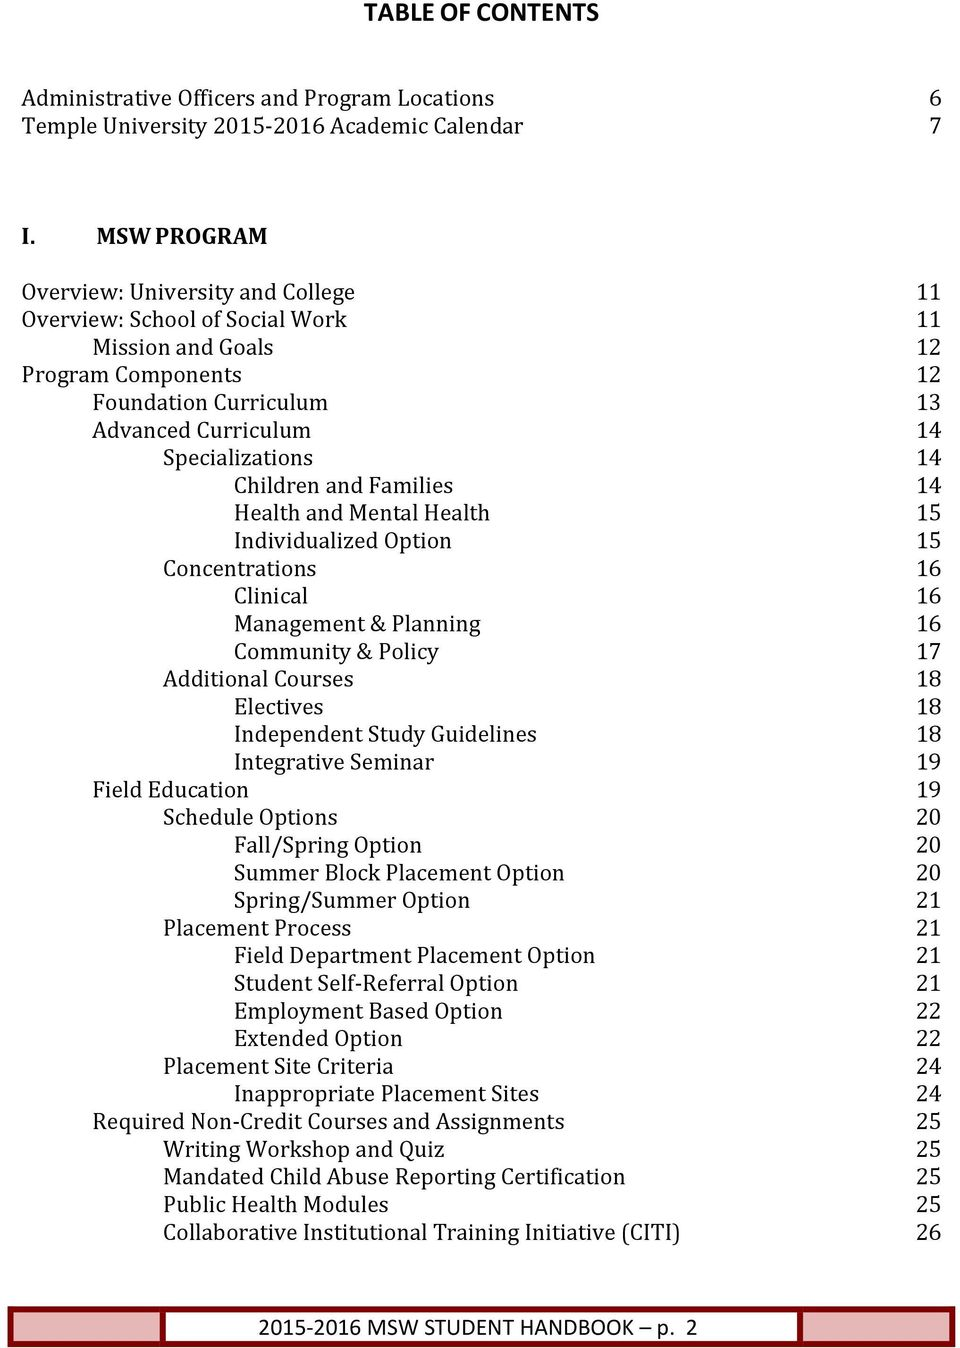 Children and Families 14 Health and Mental Health 15 Individualized Option 15 Concentrations 16 Clinical 16 Management & Planning 16 Community & Policy 17 Additional Courses 18 Electives 18